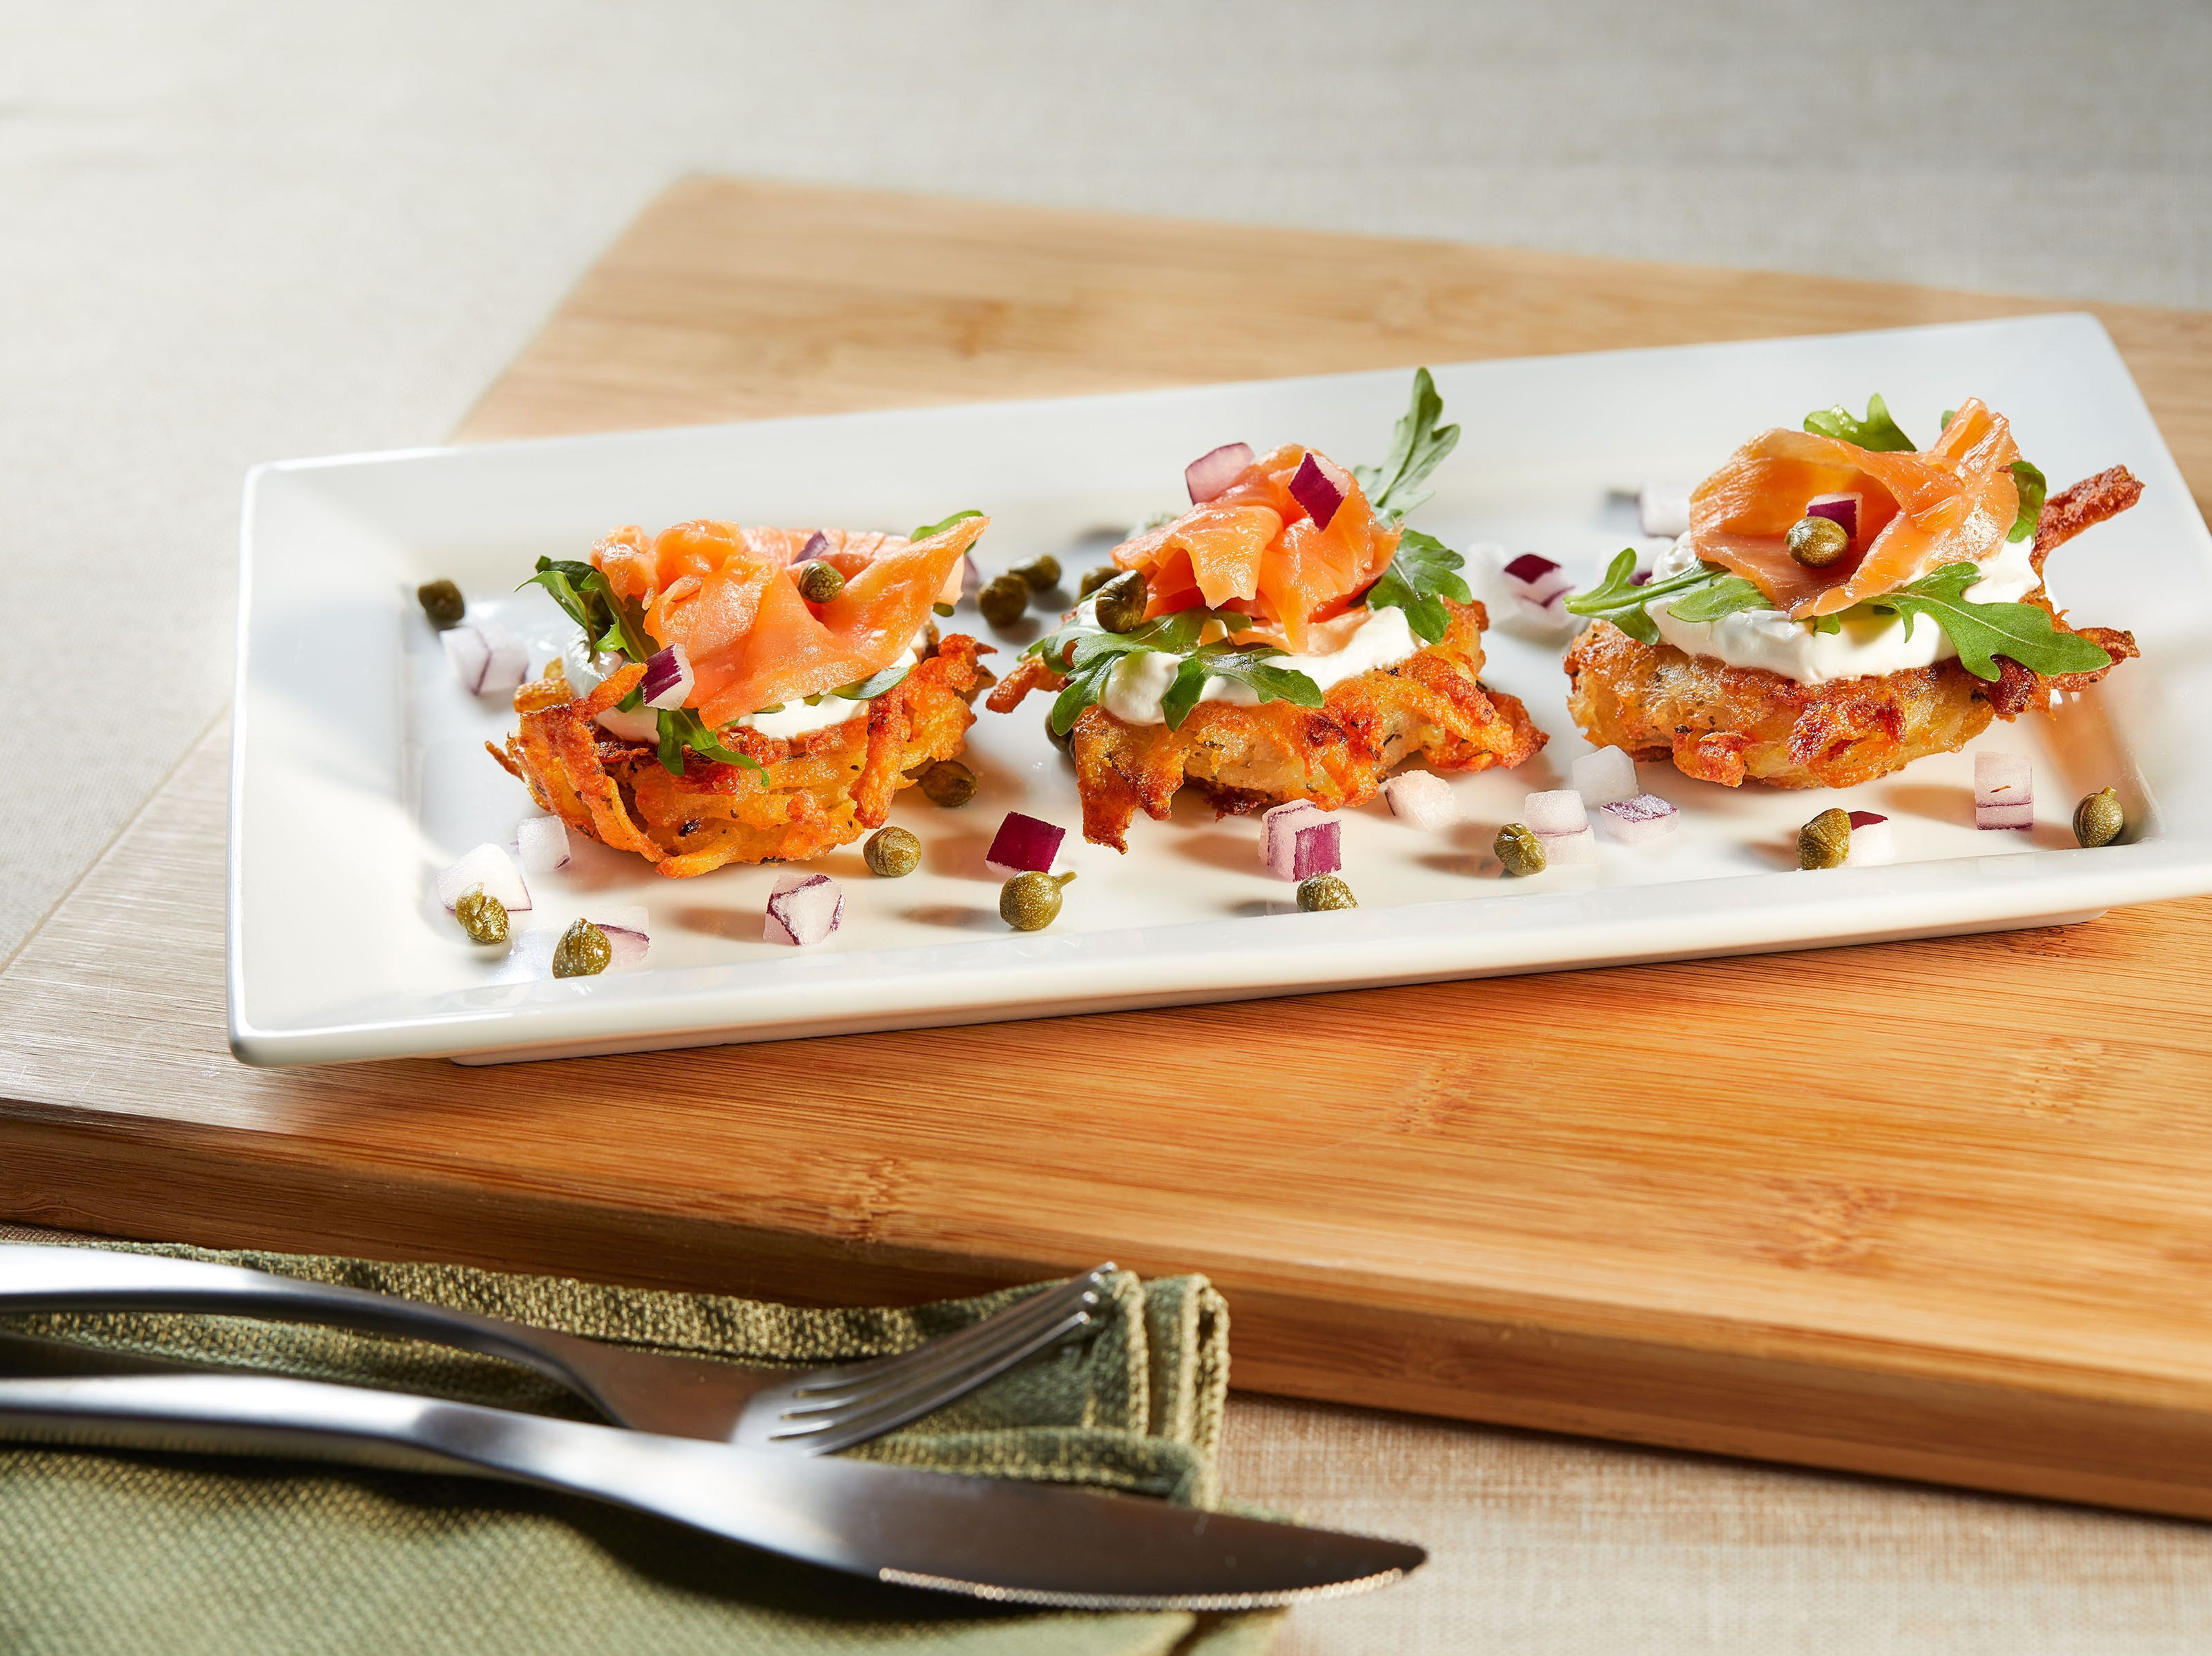 Nova latkes at TooJay's Deli are crispy miniature potato pancakes topped with sliced smoked salmon and sour cream.